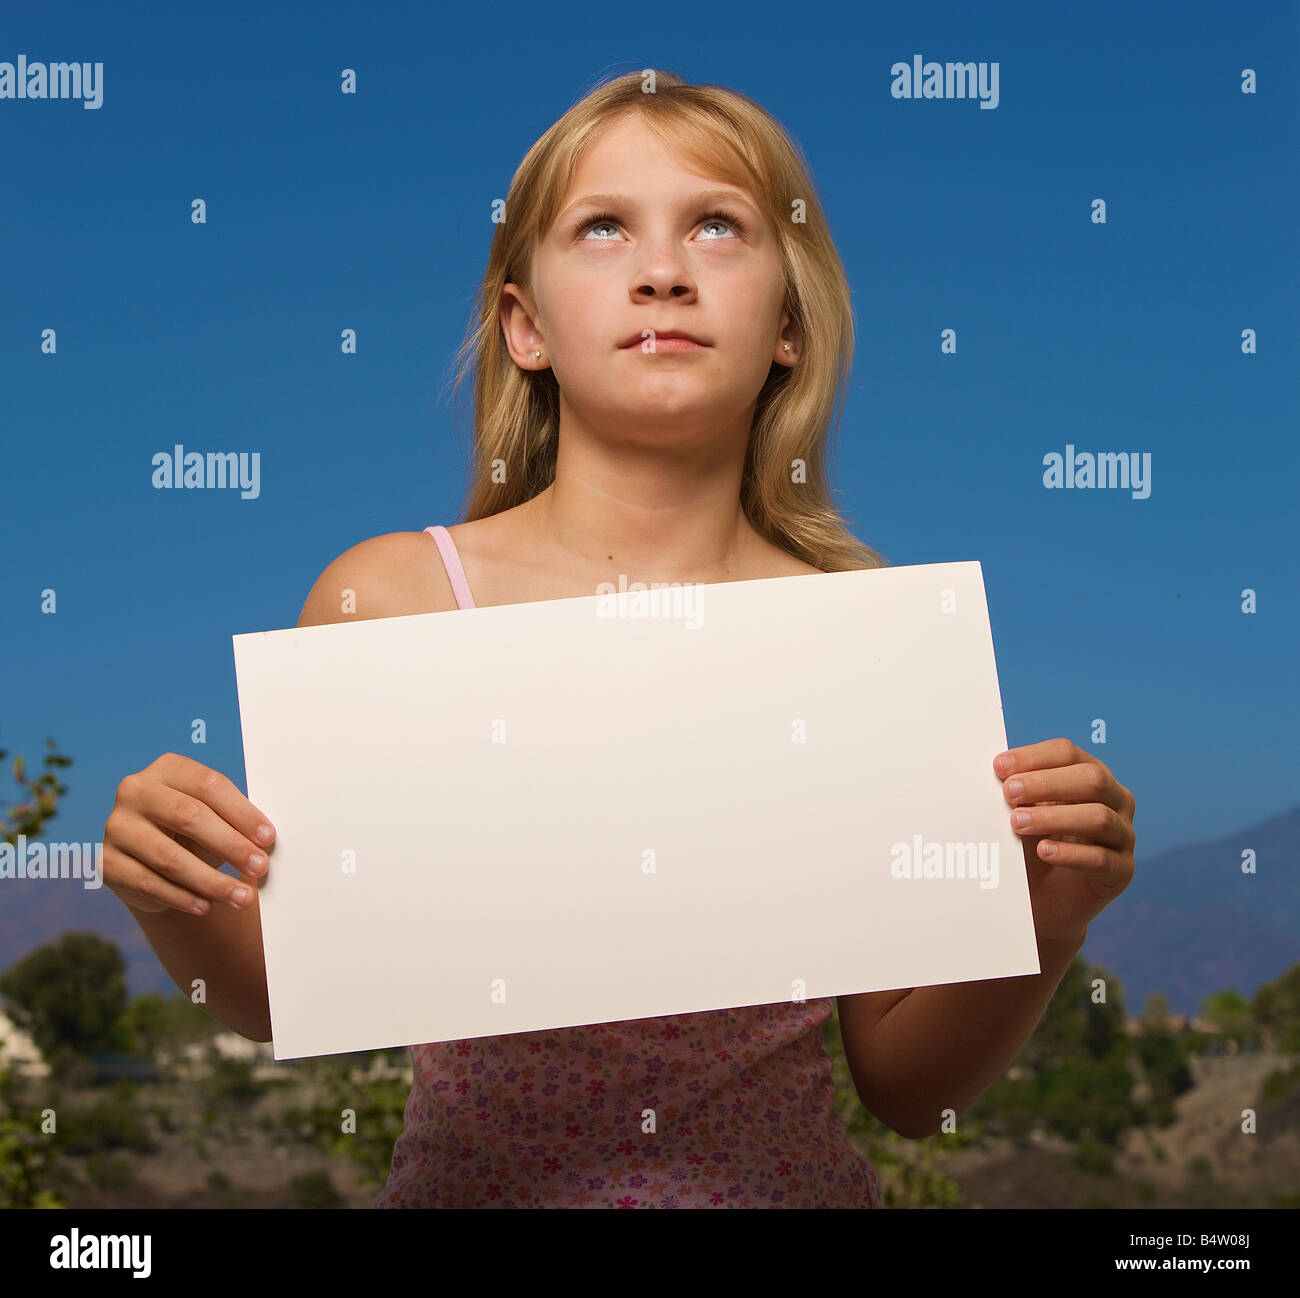 Young girl holding blank sign looking up toward the sky. - Stock Image